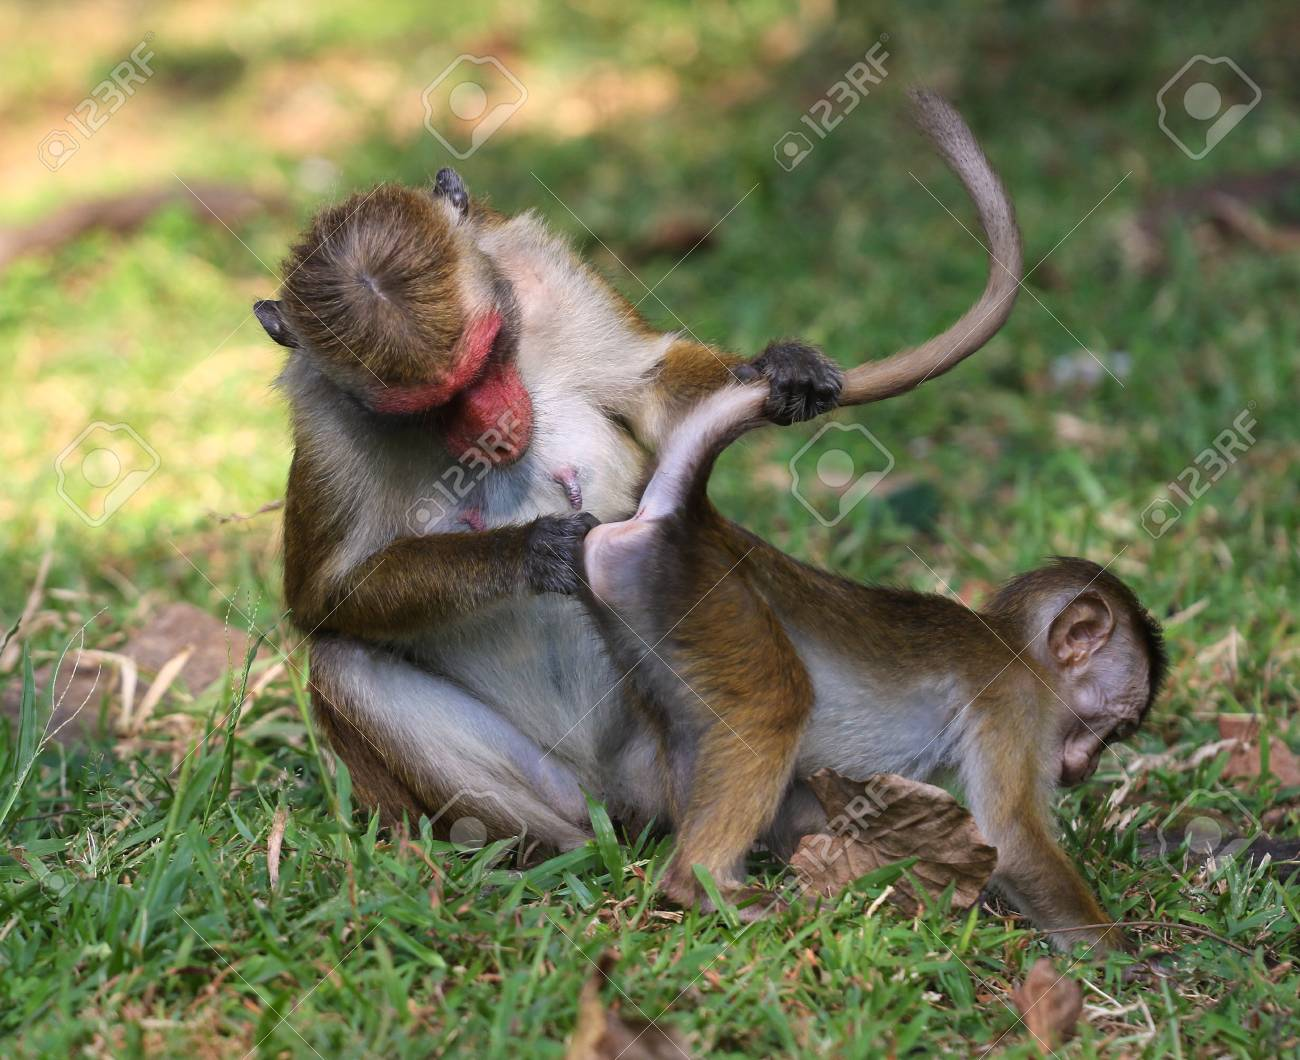 Macaca monkey is inspect baby ass, Funny Monkey Business Stock Photo - 97646196